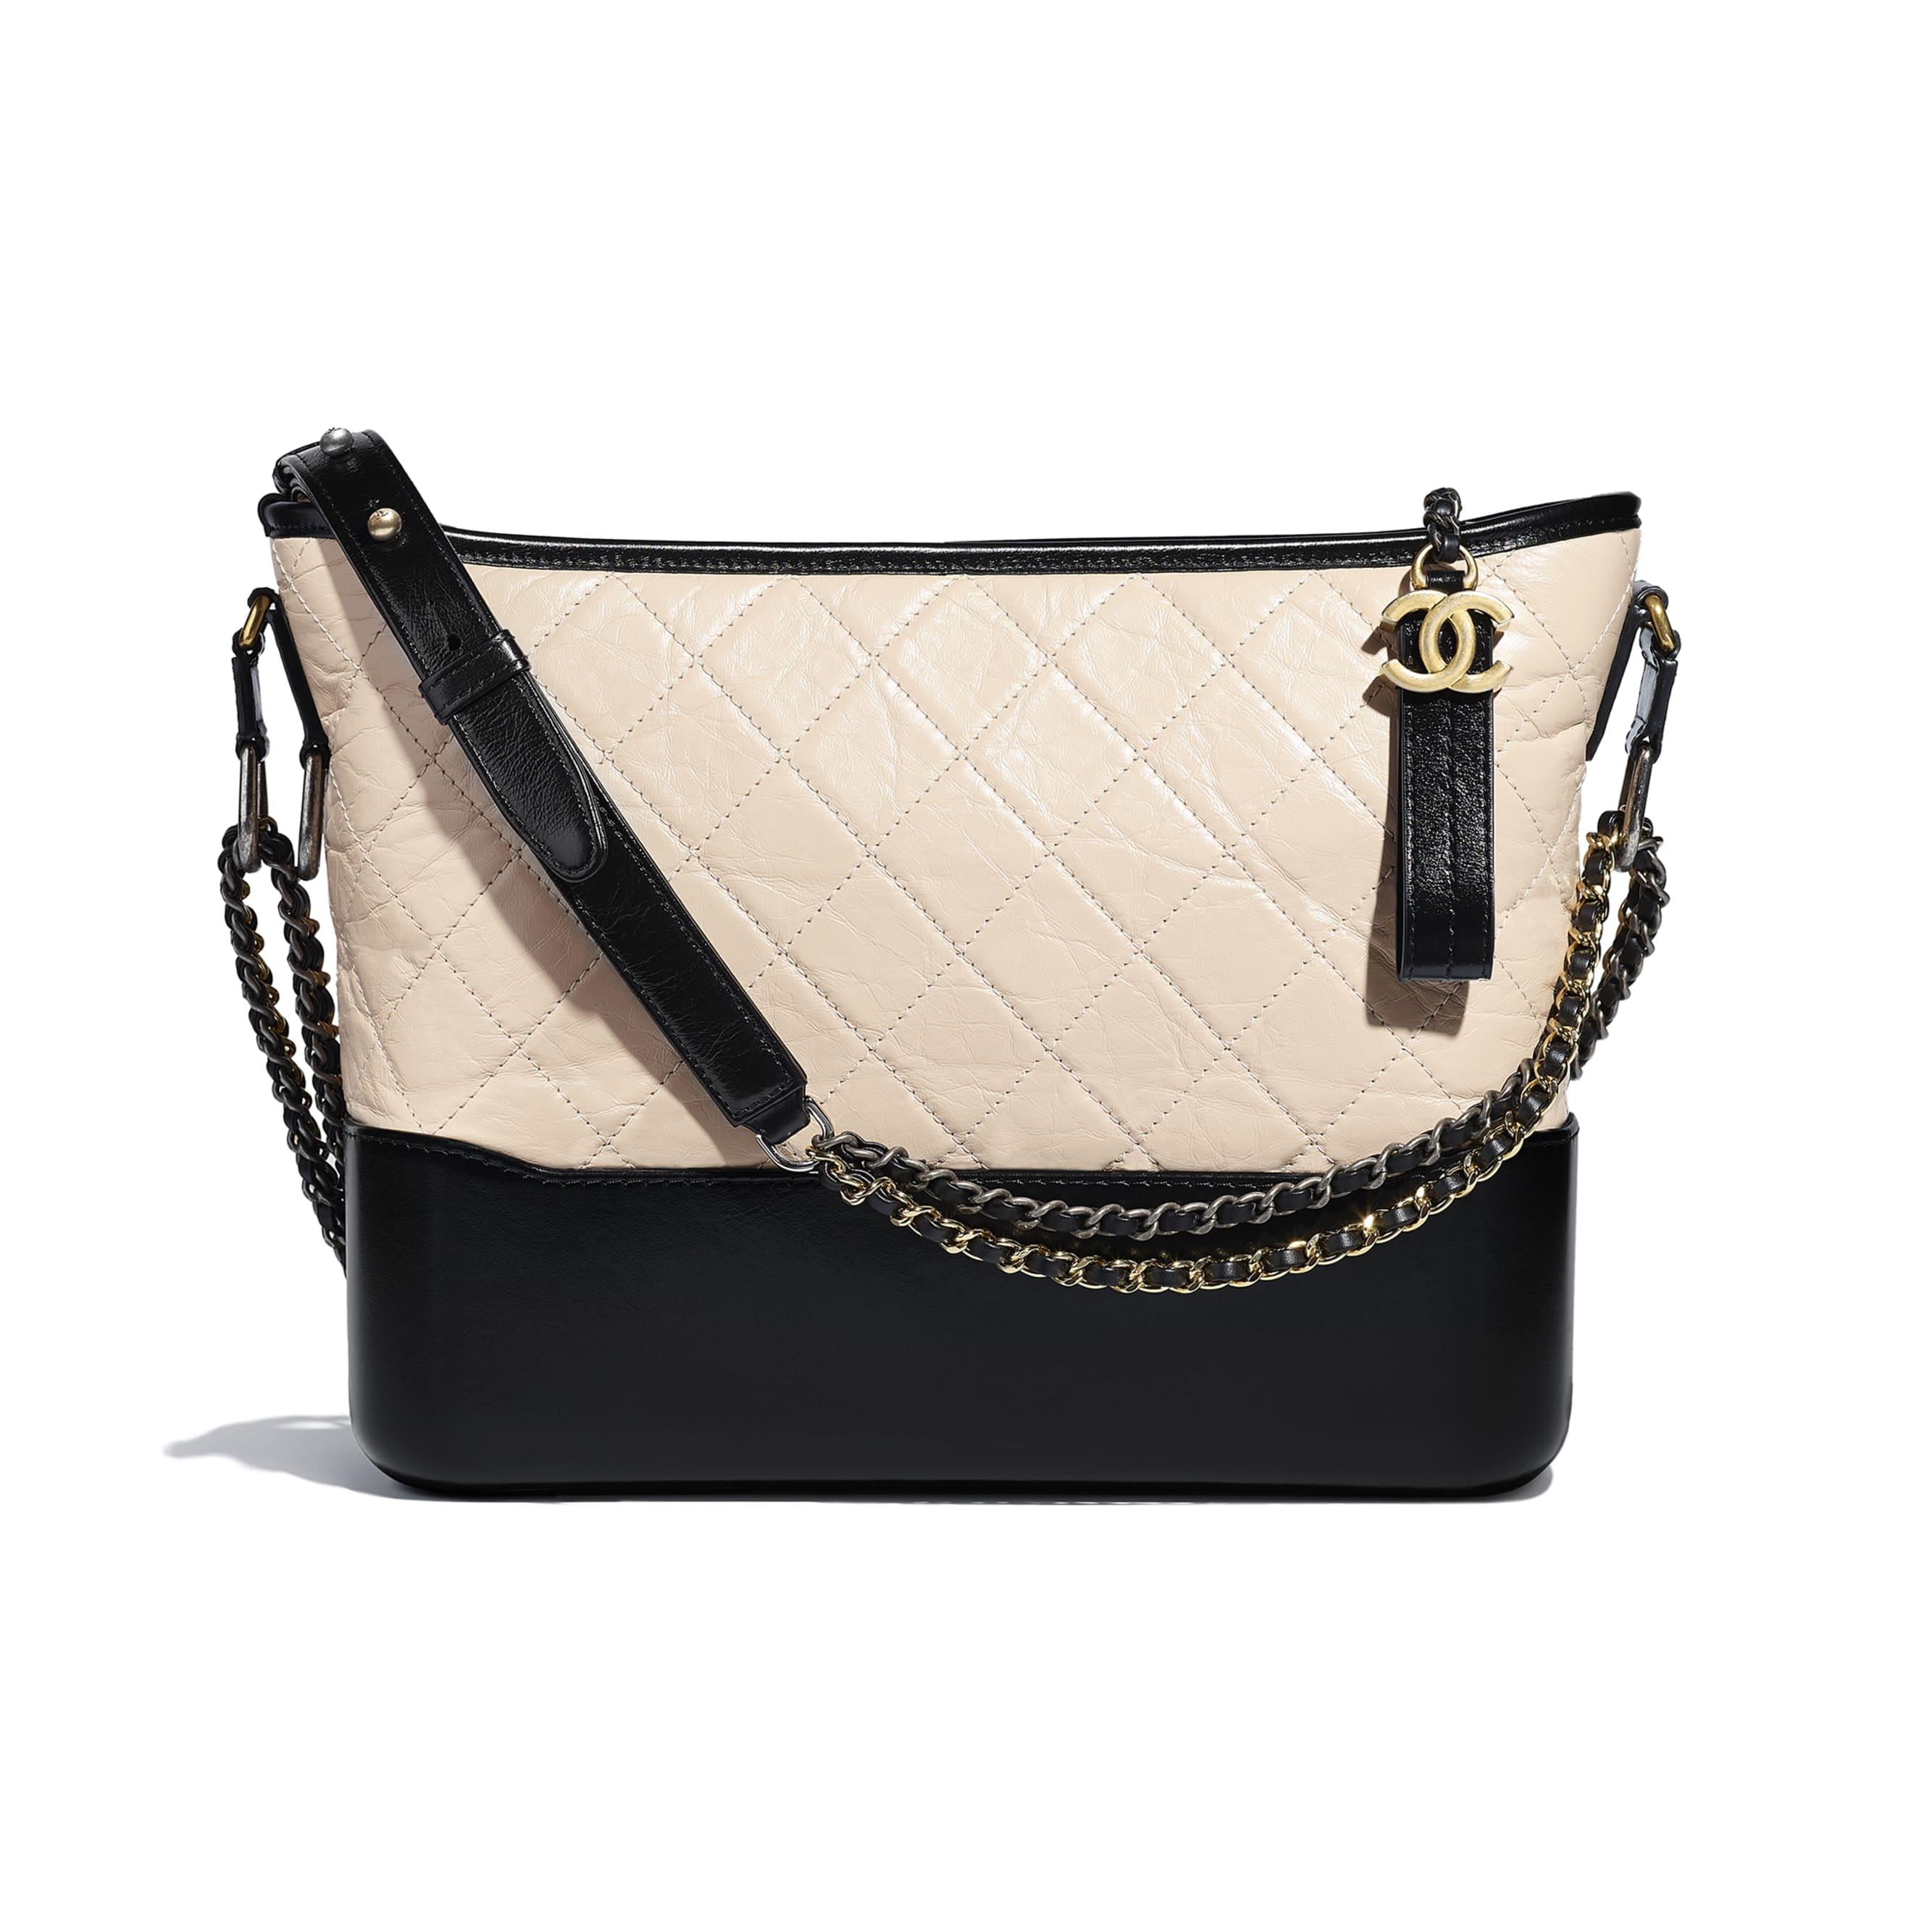 CHANEL'S GABRIELLE Large Hobo Bag - Beige & Black - Aged Calfskin, Smooth Calfskin, Gold-Tone, Silver-Tone & Ruthenium-Finish Metal - CHANEL - Default view - see standard sized version